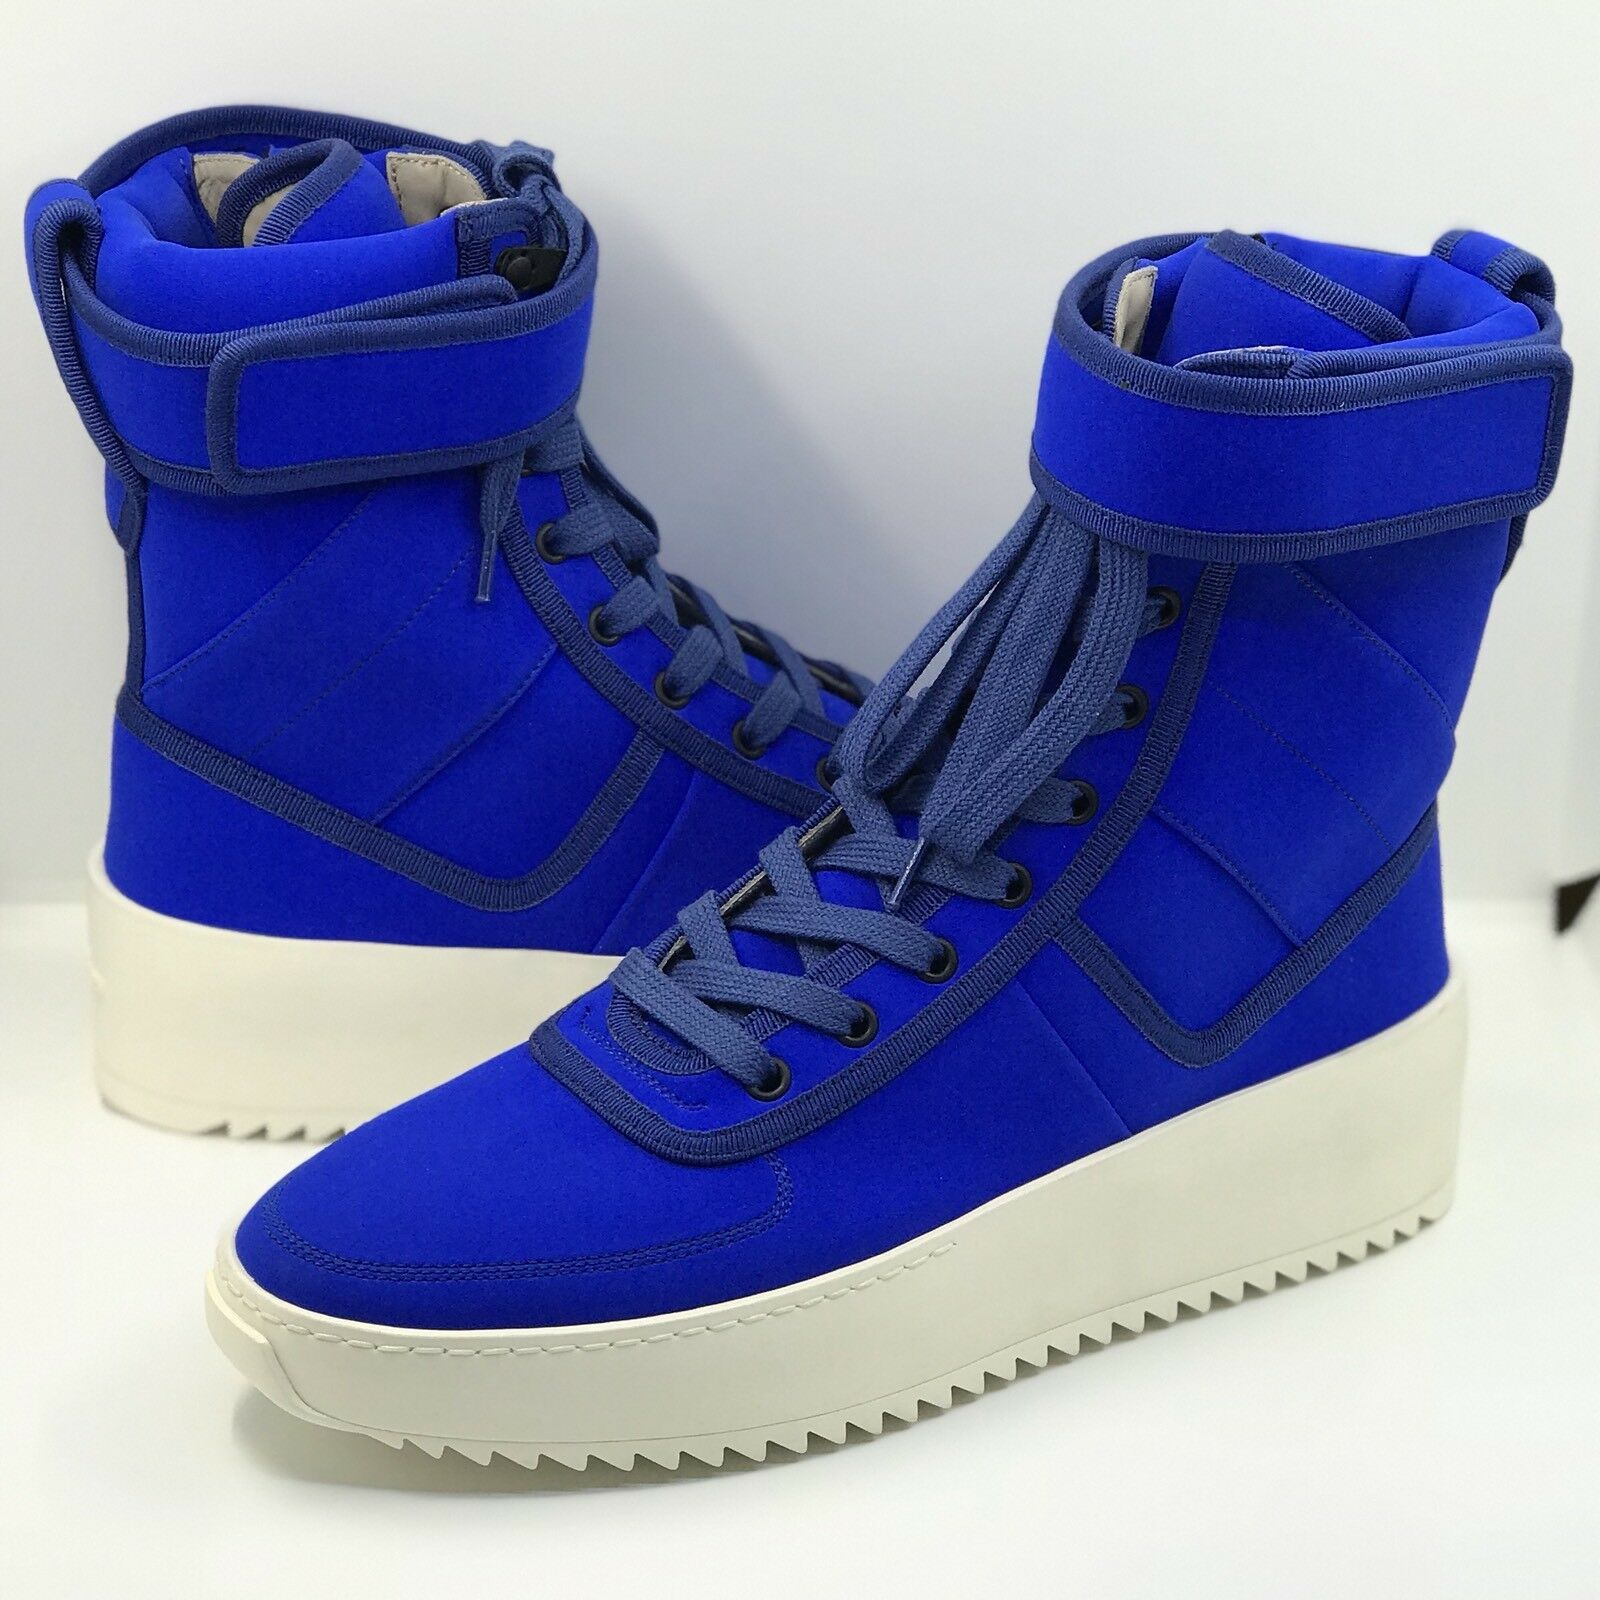 Fear Of God Military scarpe da ginnastica  Royal blu